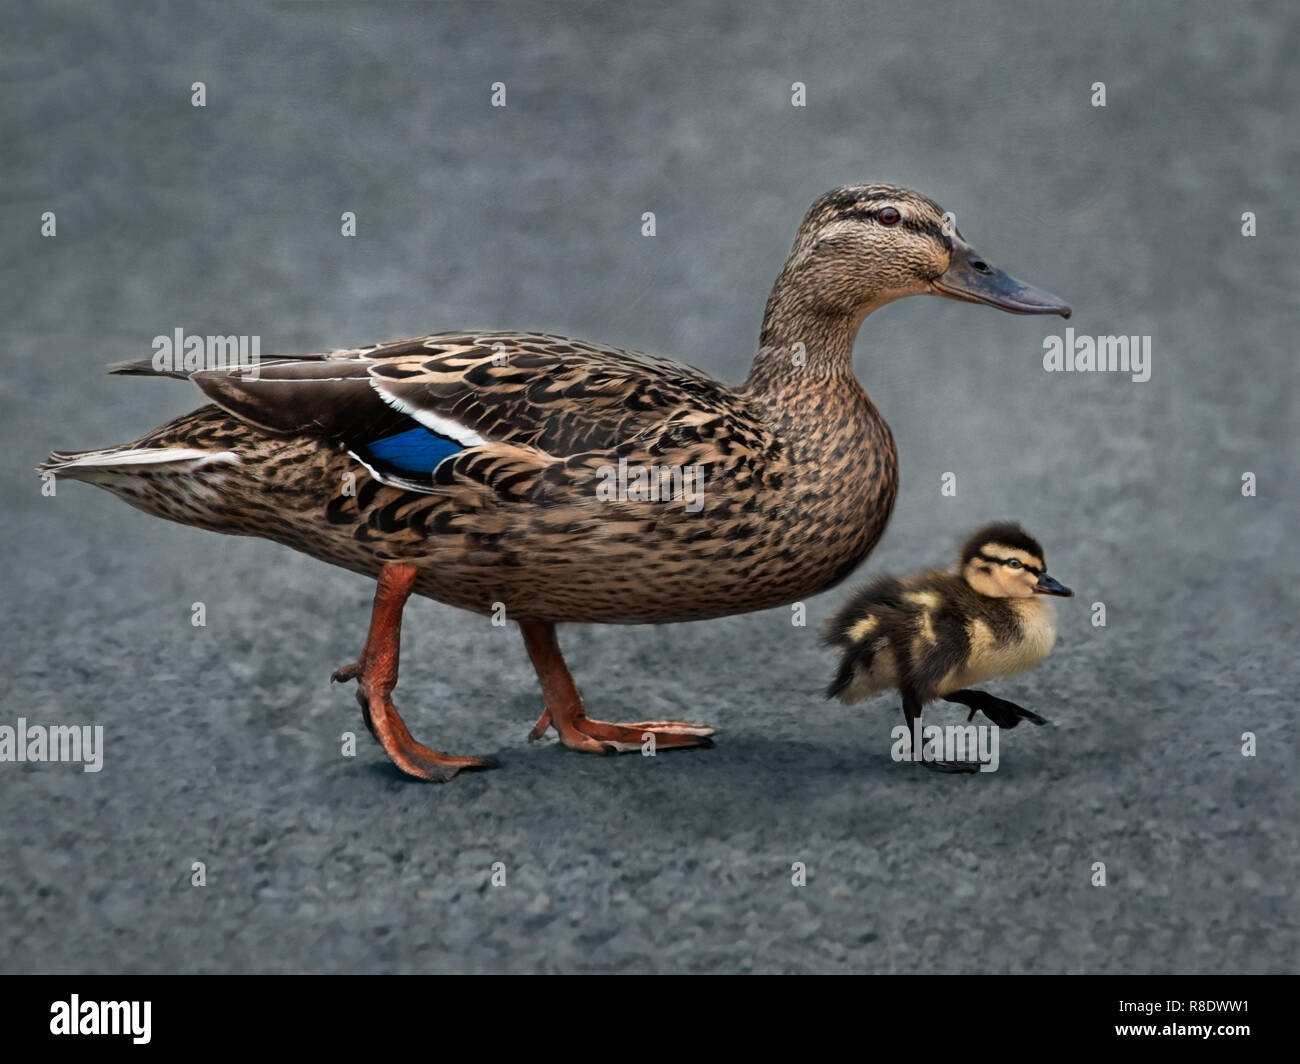 A Mallard duck and her duckling walking in sync - Stock Image